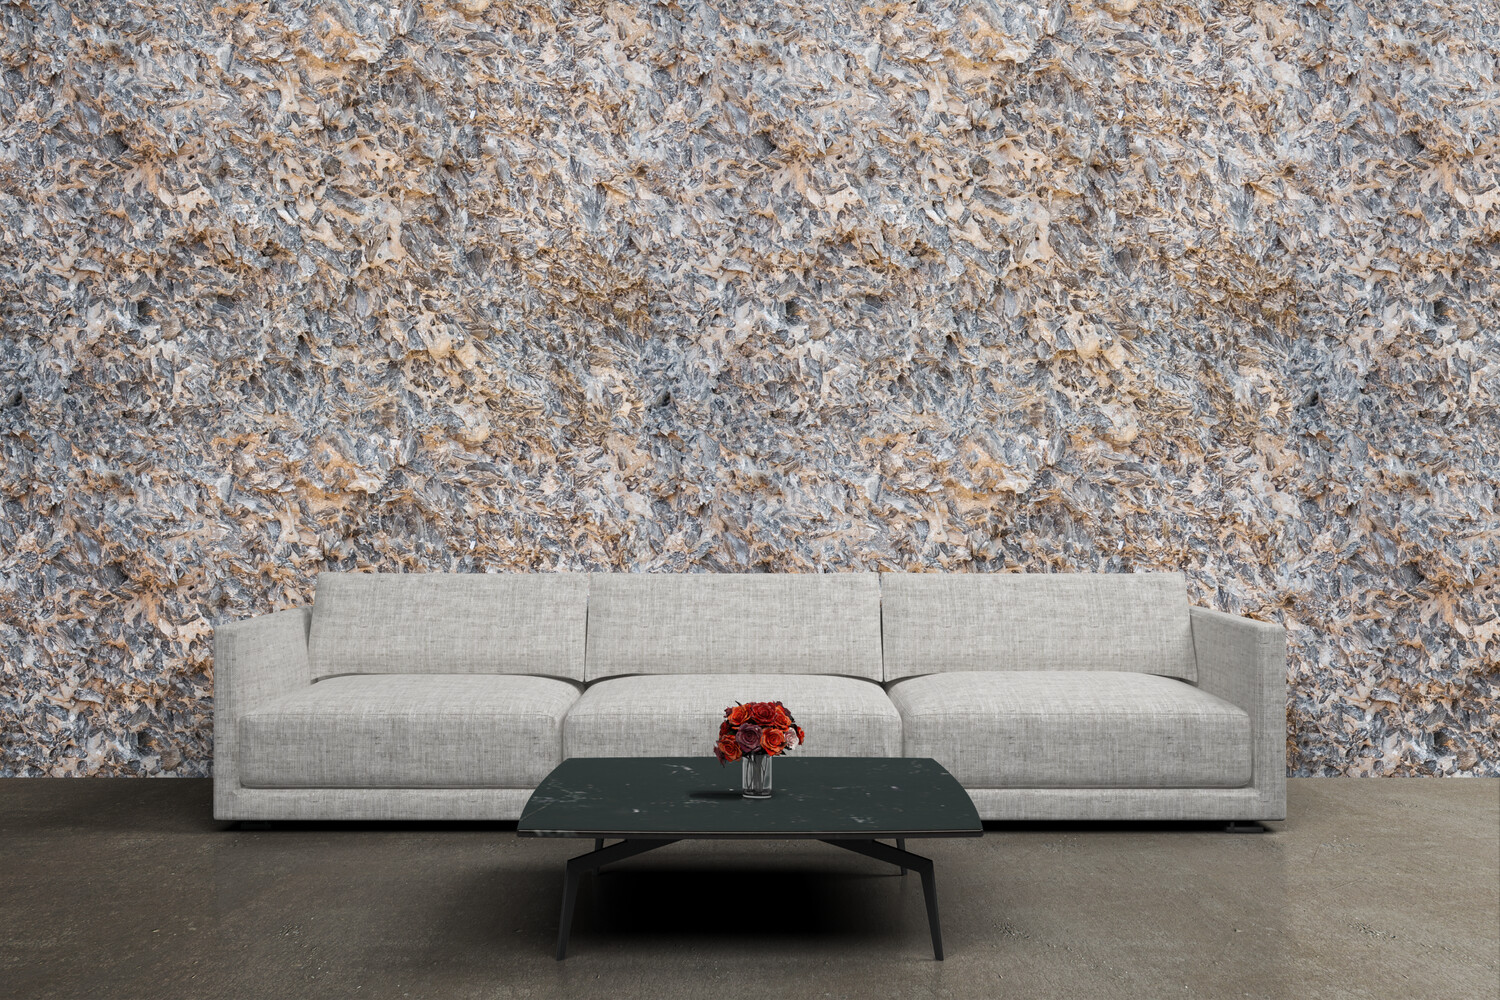 TEXTURED STONE | Vinyl Wall Wrap for Any Room | Removable Vinyl Wallpaper